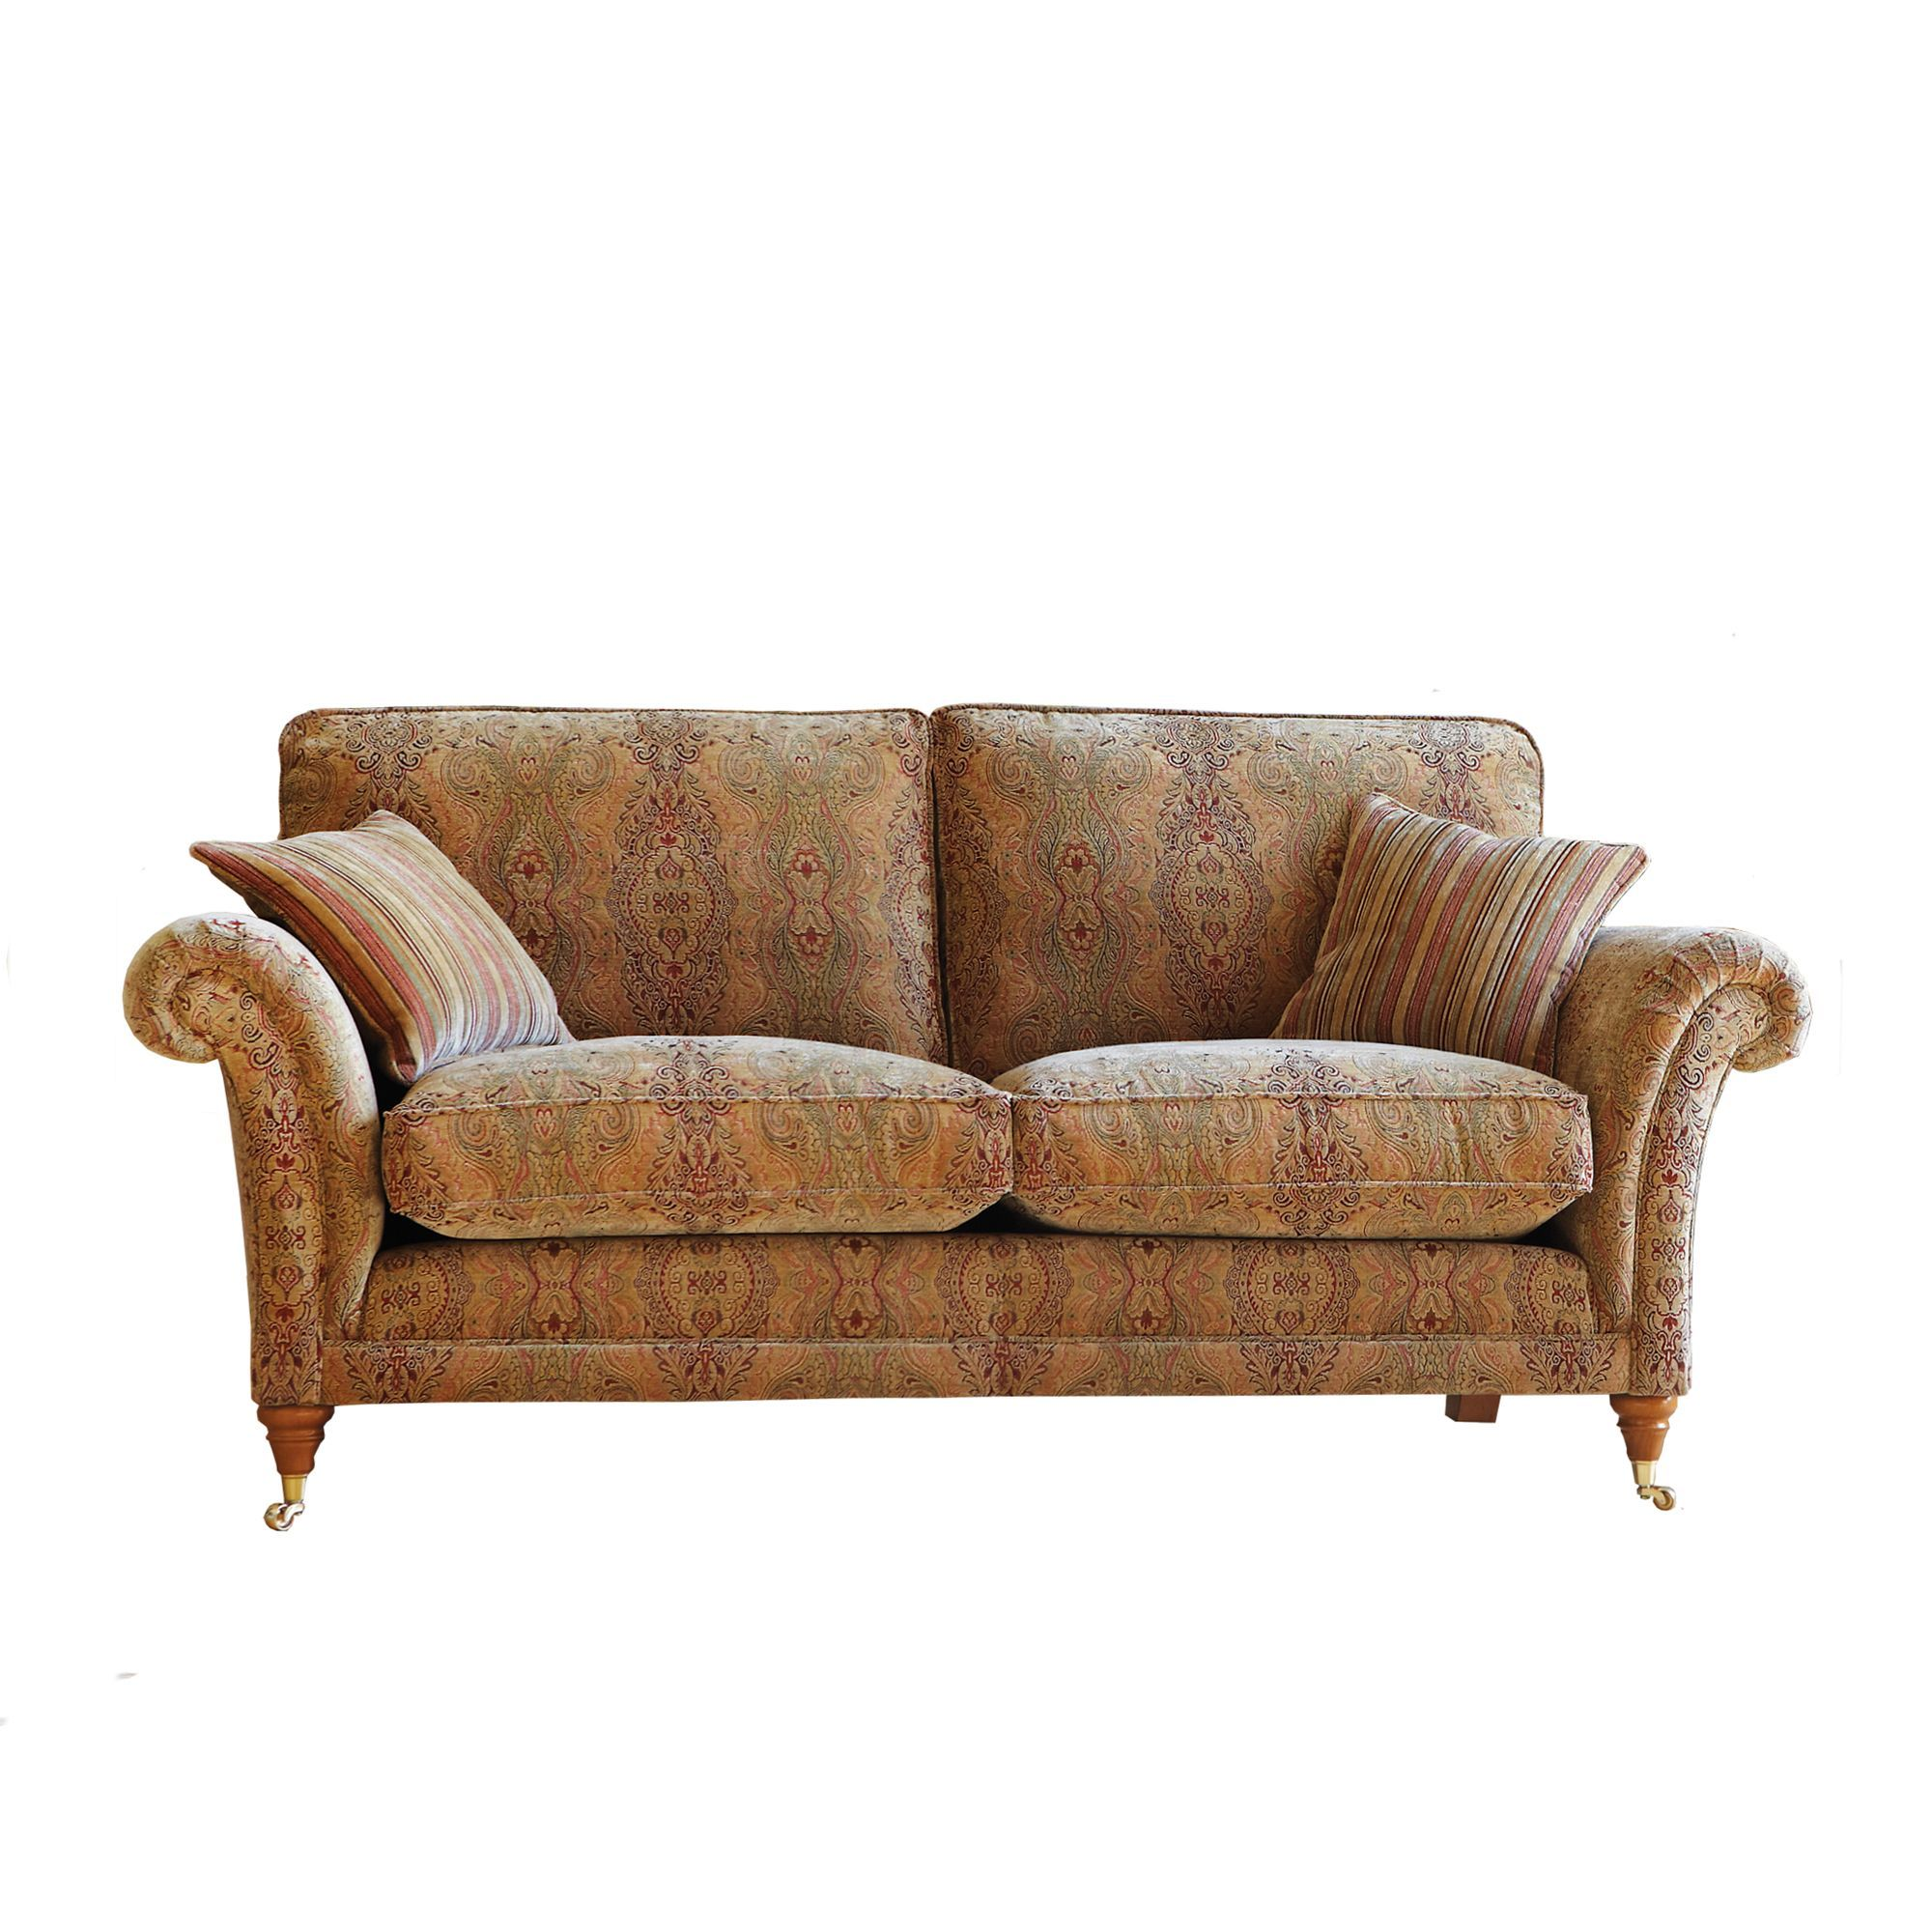 foam for sofa cushions uk manufacturing companies in india parker knoll burghley large 2 seater - leather sofas ...